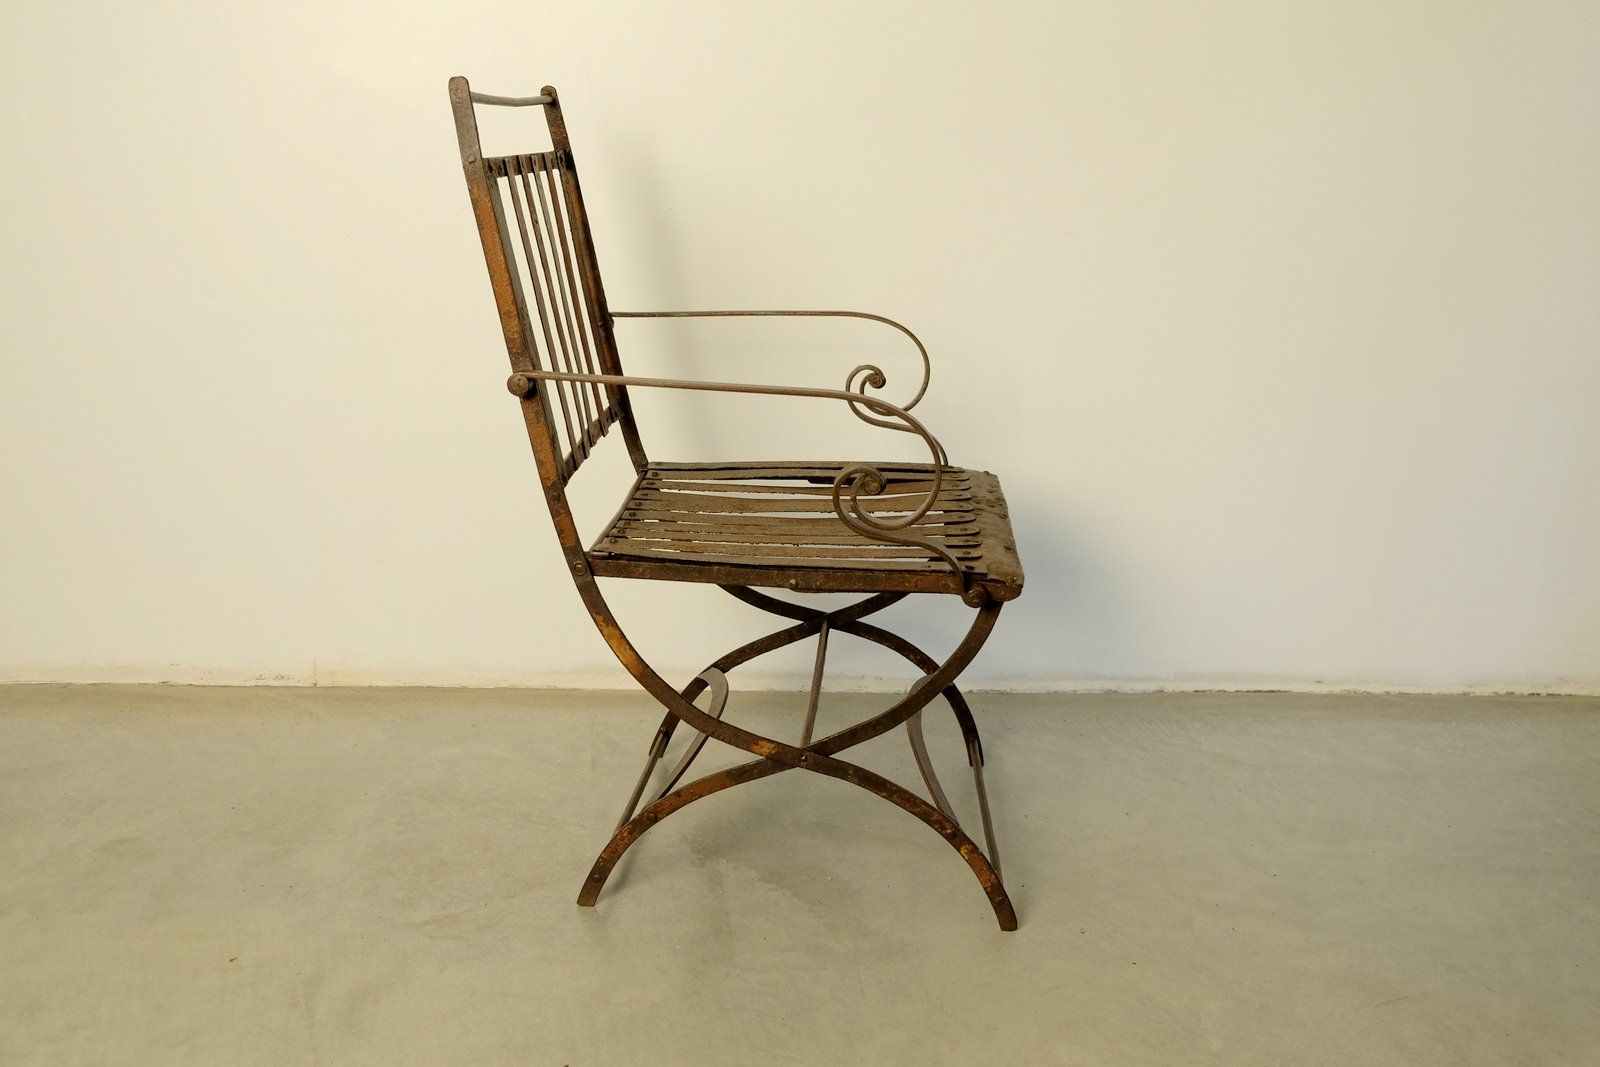 Vintage Riveted Folding Garden Chair For Sale At Pamono